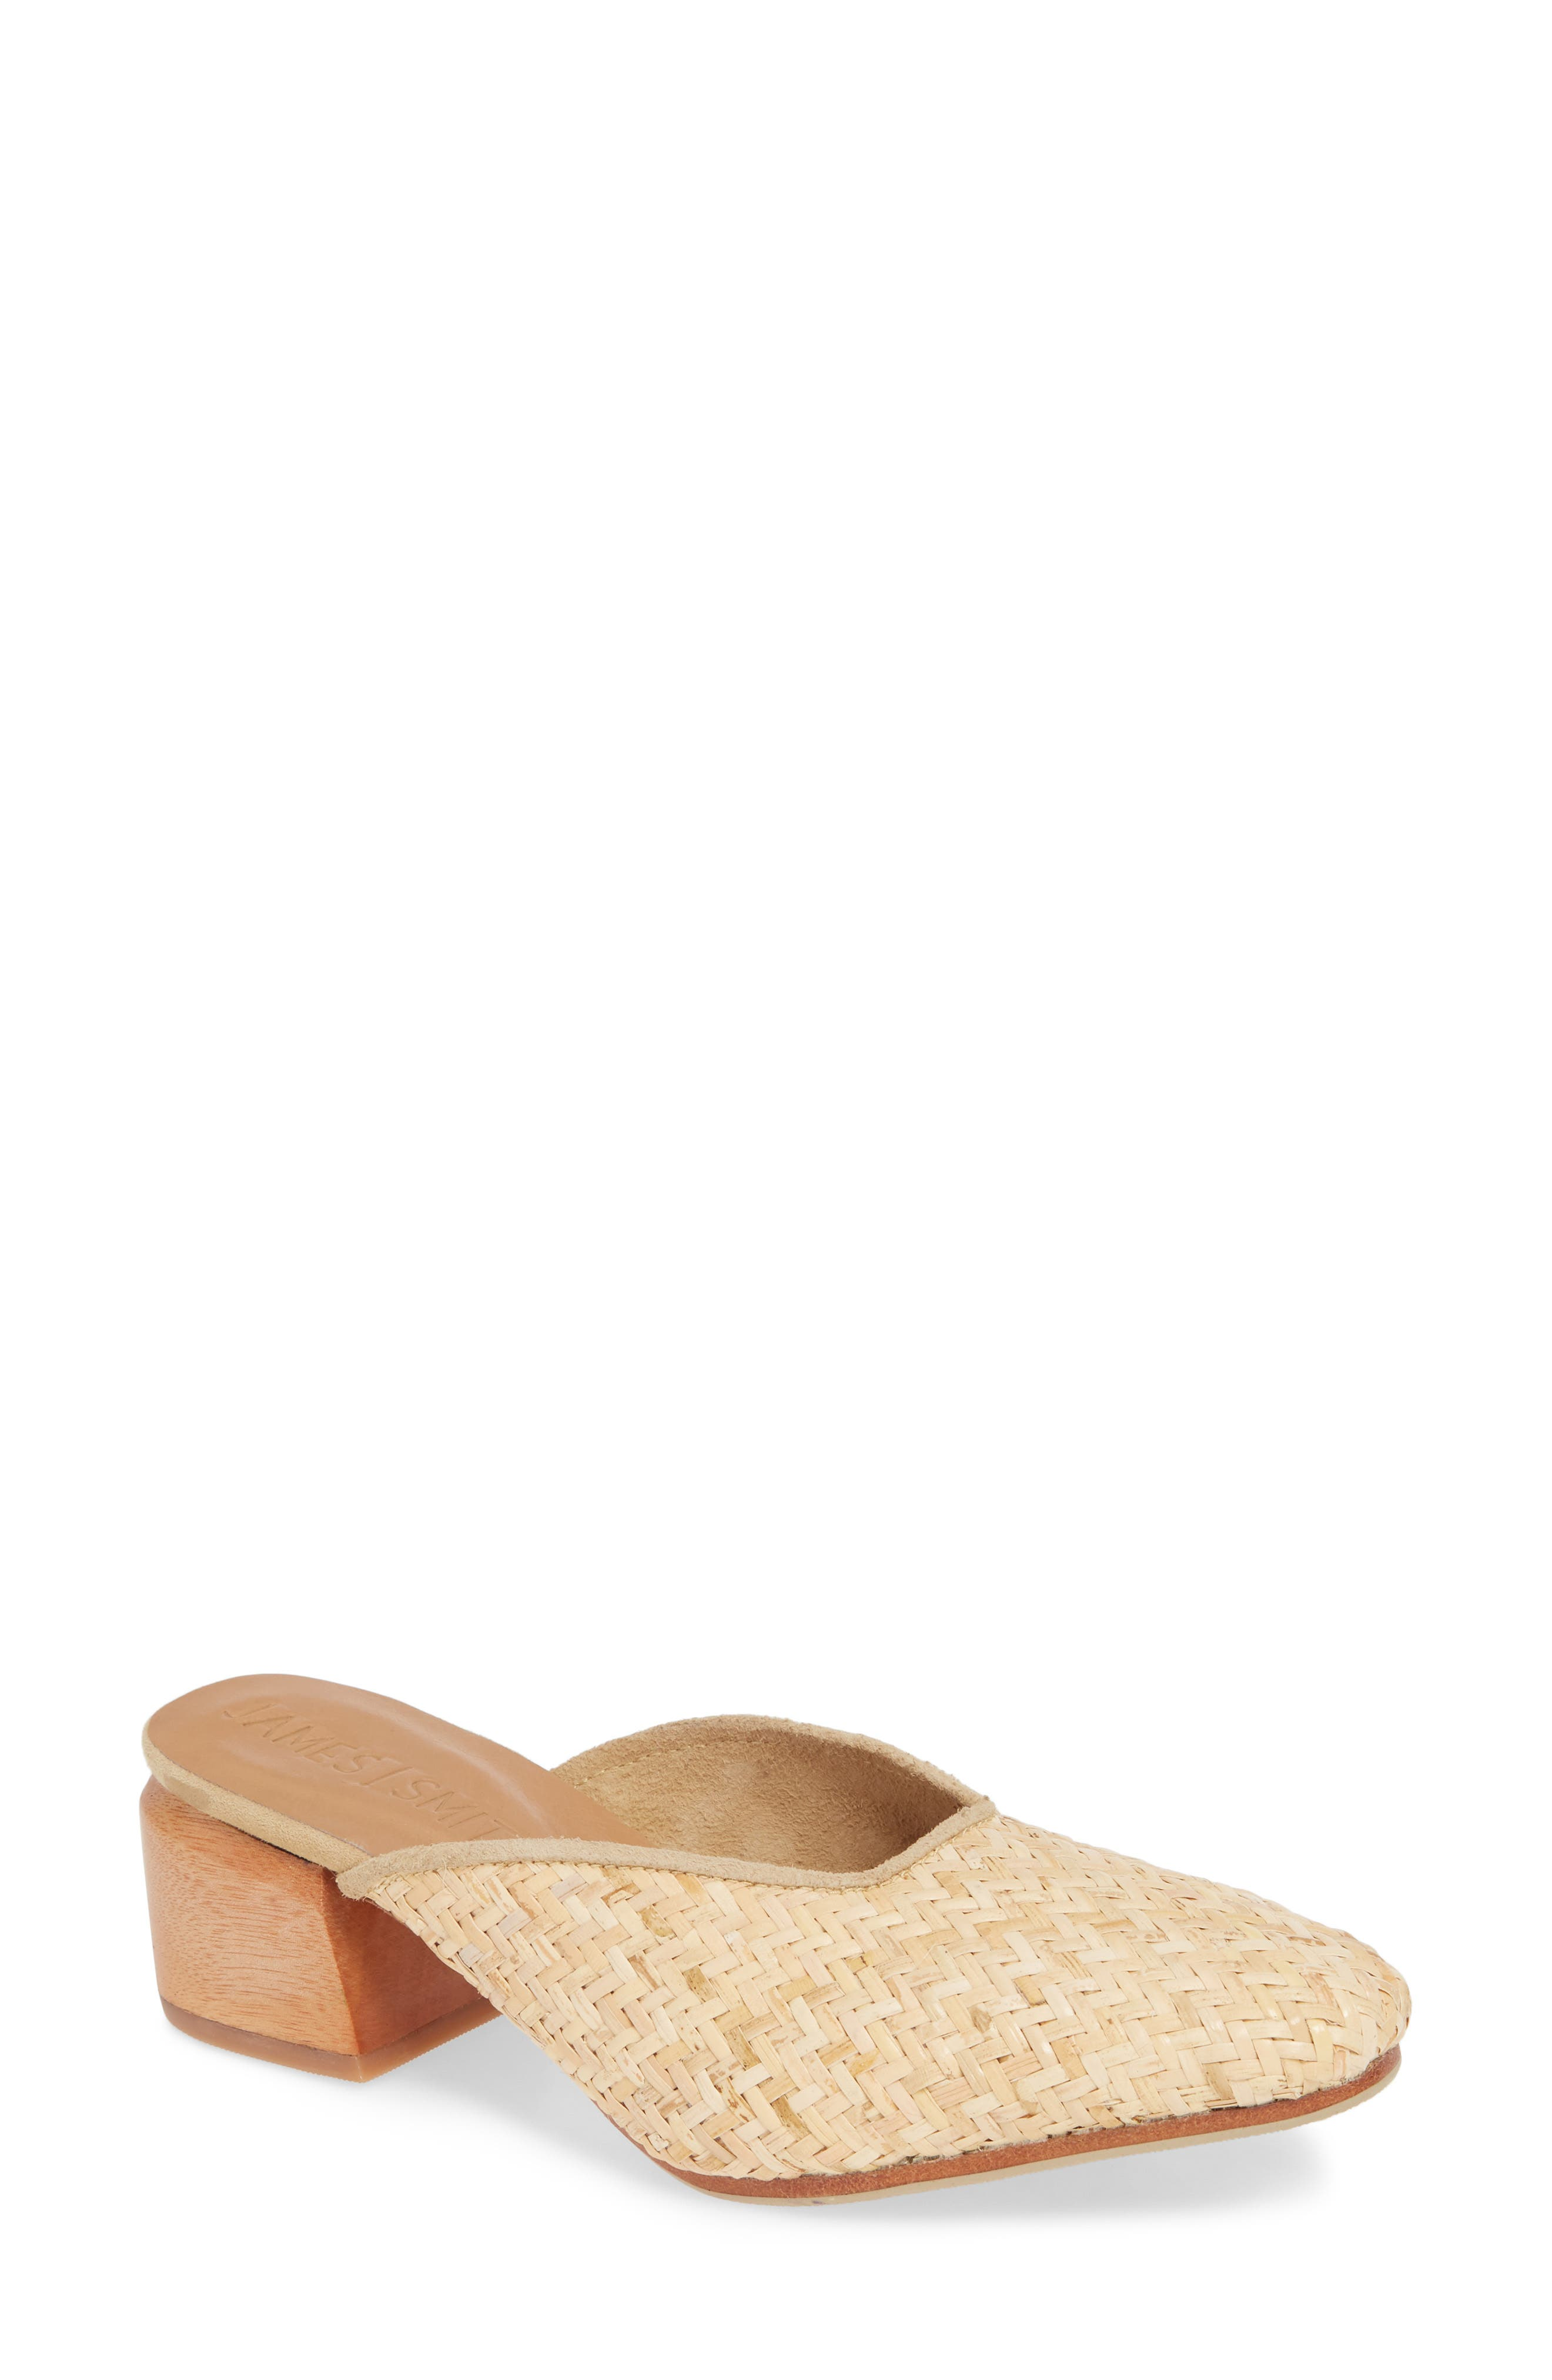 08f65ee225f Women s JAMES SMITH Shoes